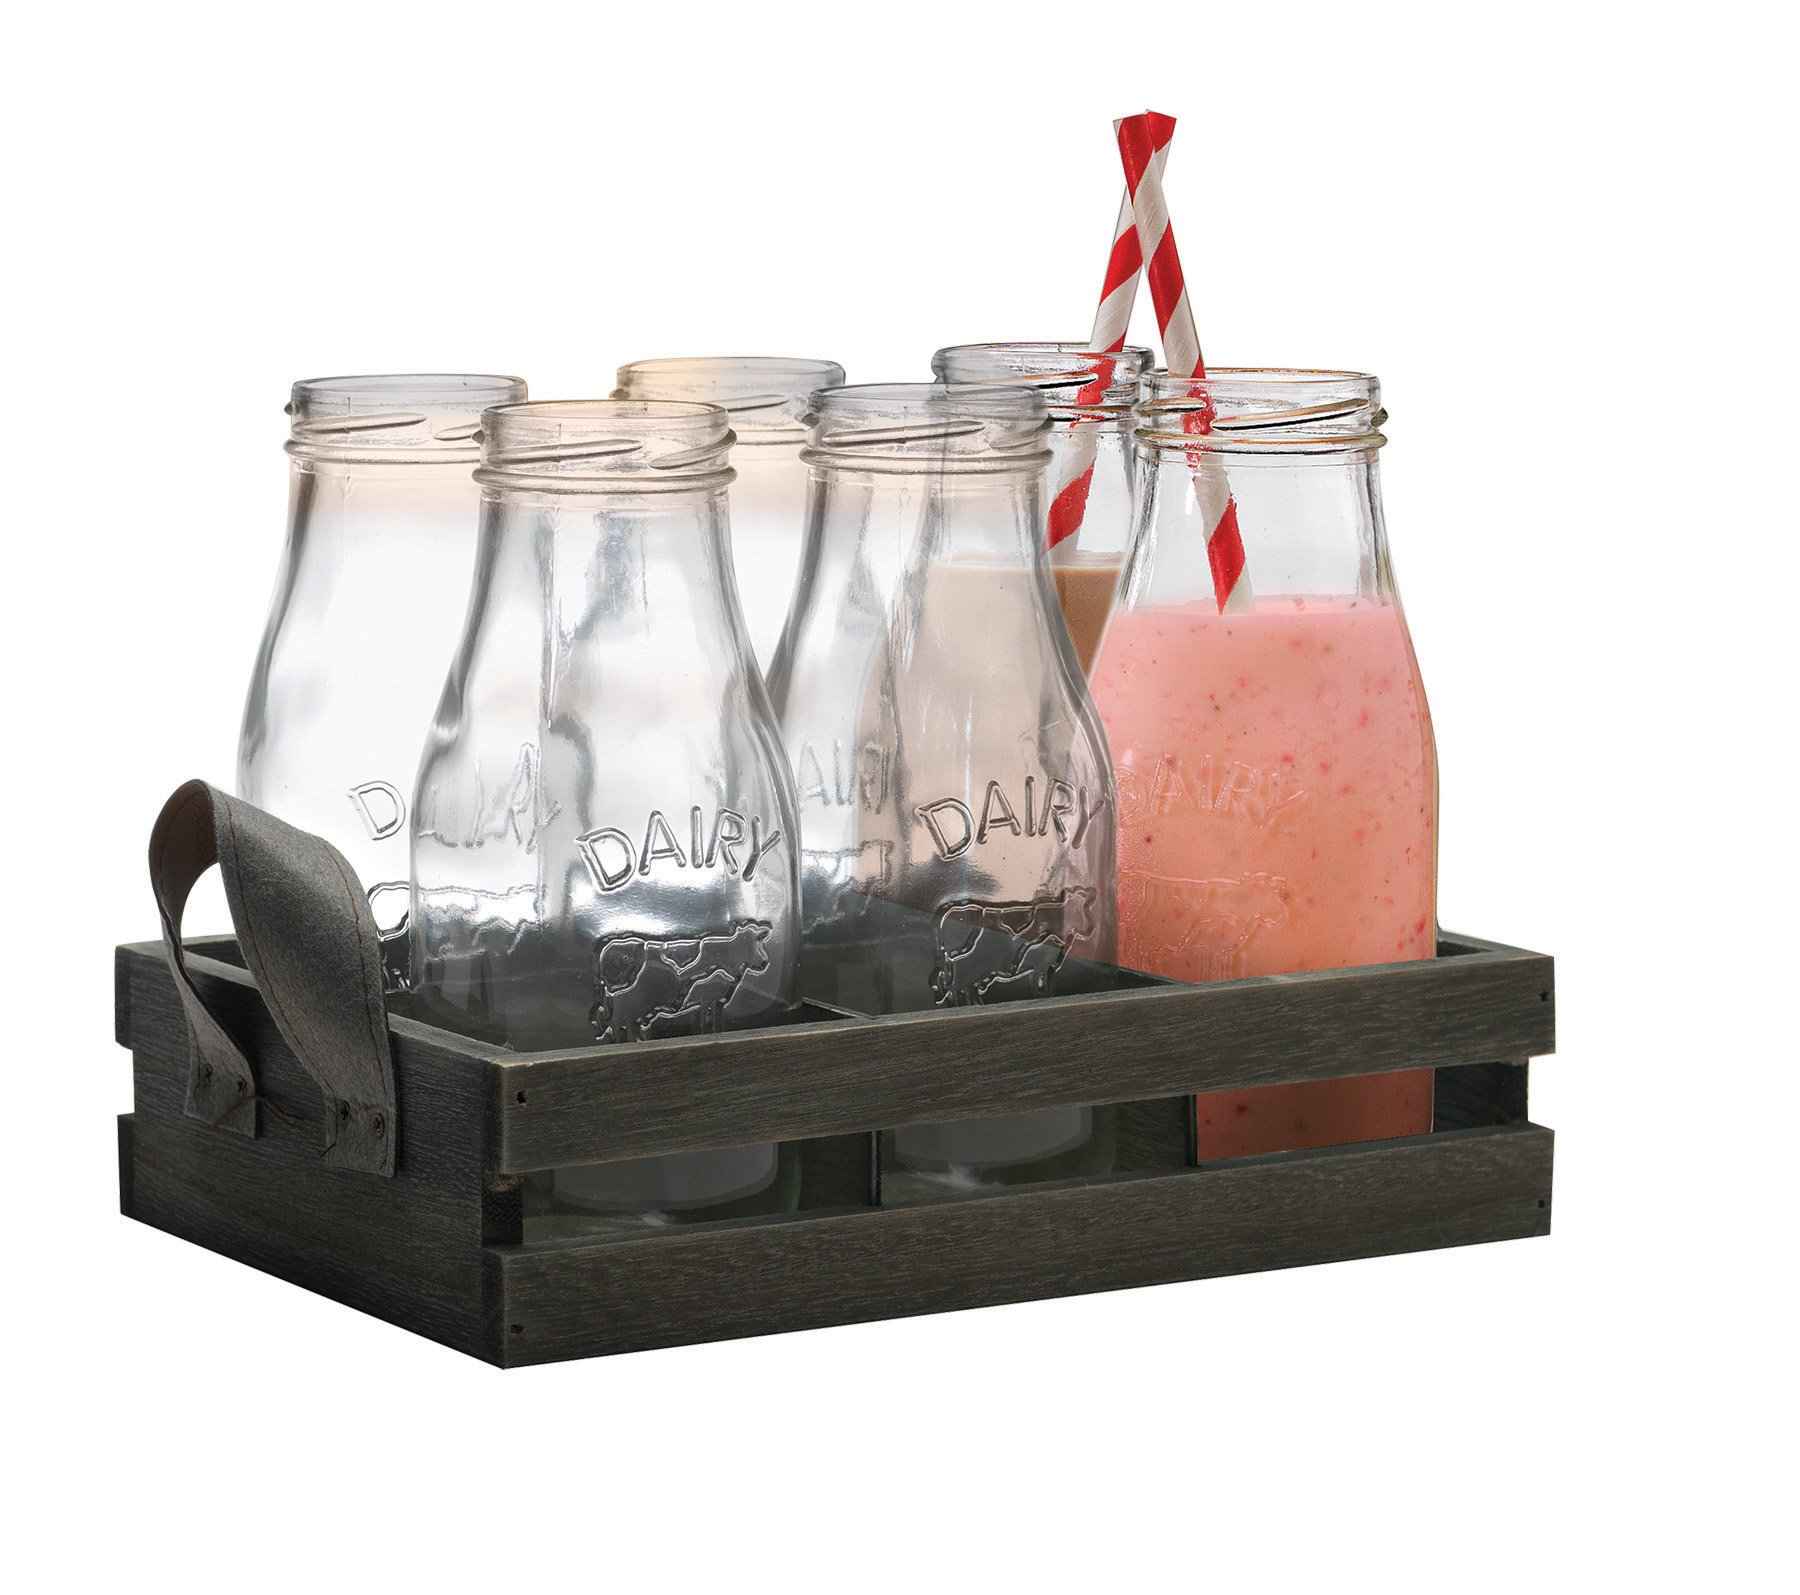 Circleware Country''Dairy'' Antique, Set of 13, Glass Milk Drink Bottles with Strong Straws and Wooden Tray, 10.5 Ounce, 6 Glass Bottles, 6 Straws 1 Wooden Tray, Limited Edition Glassware Drinkware by Circleware (Image #1)